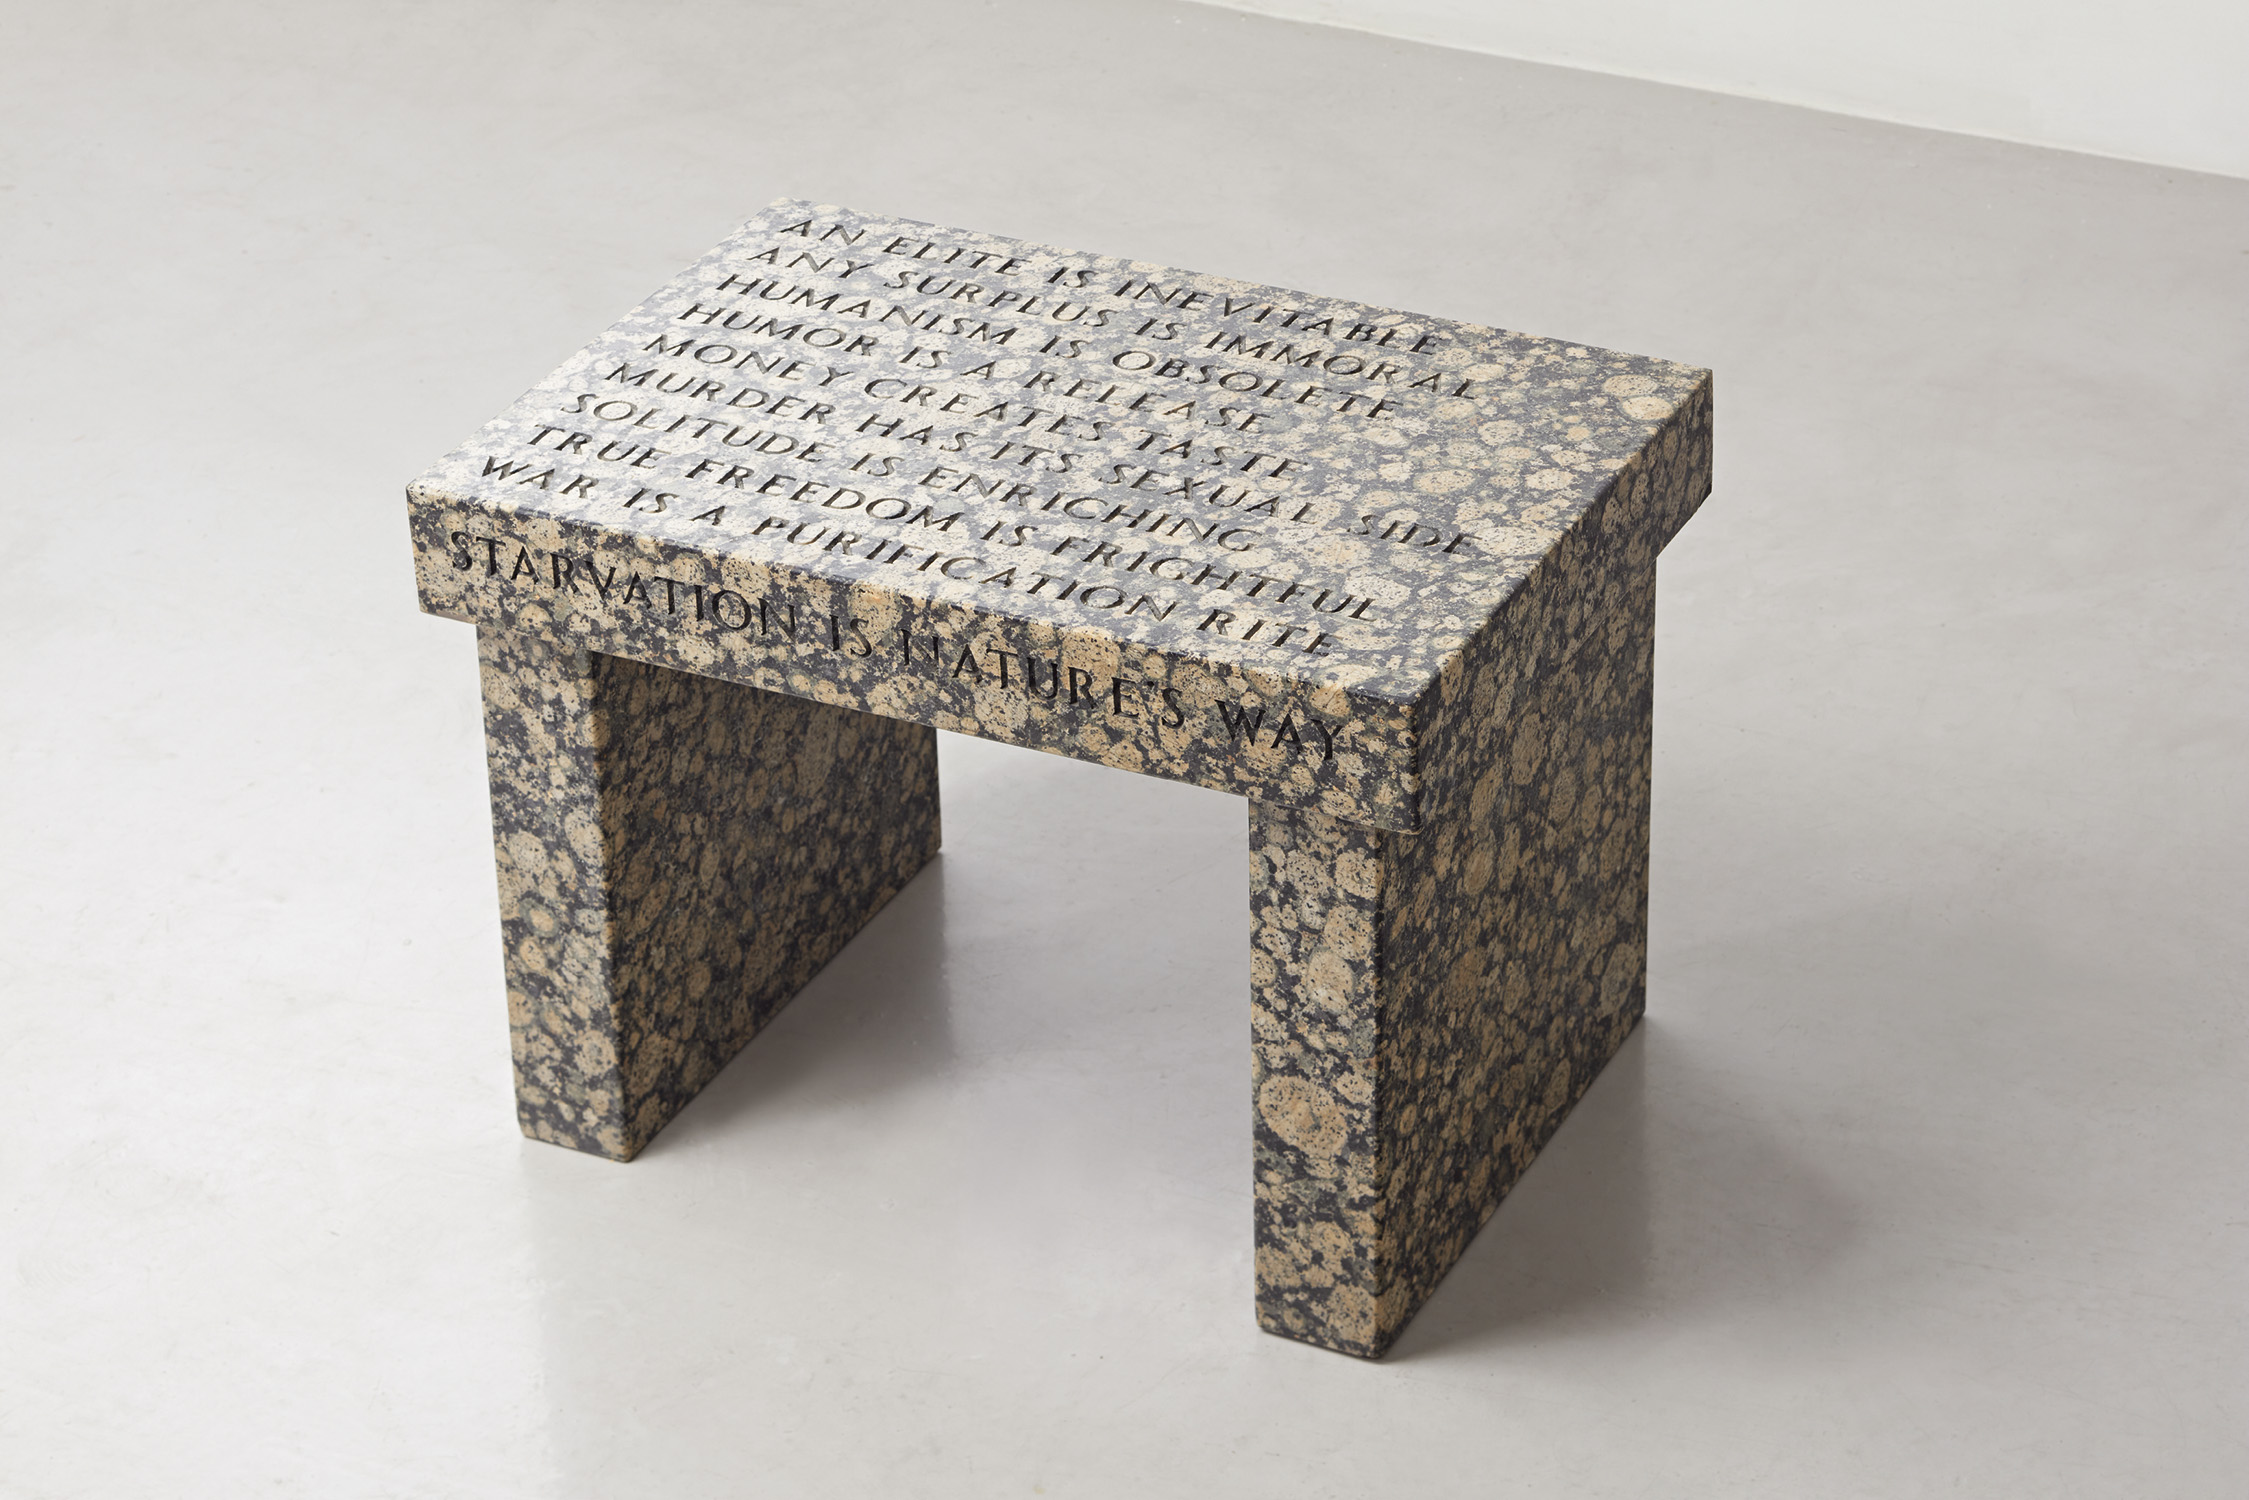 JENNY HOLZER Truism Footstool 1988 incised Baltic brown granite 41.4 x 58.5 x 40.3 cm. (16 1/4 x 23 x 15 7/8 in.) Executed in 1988, this work is from an edition of 40 plus 8 artist's proofs. Estimate HK$150,000 - 250,000 / €17,000-28,300 / $19,200-32,100